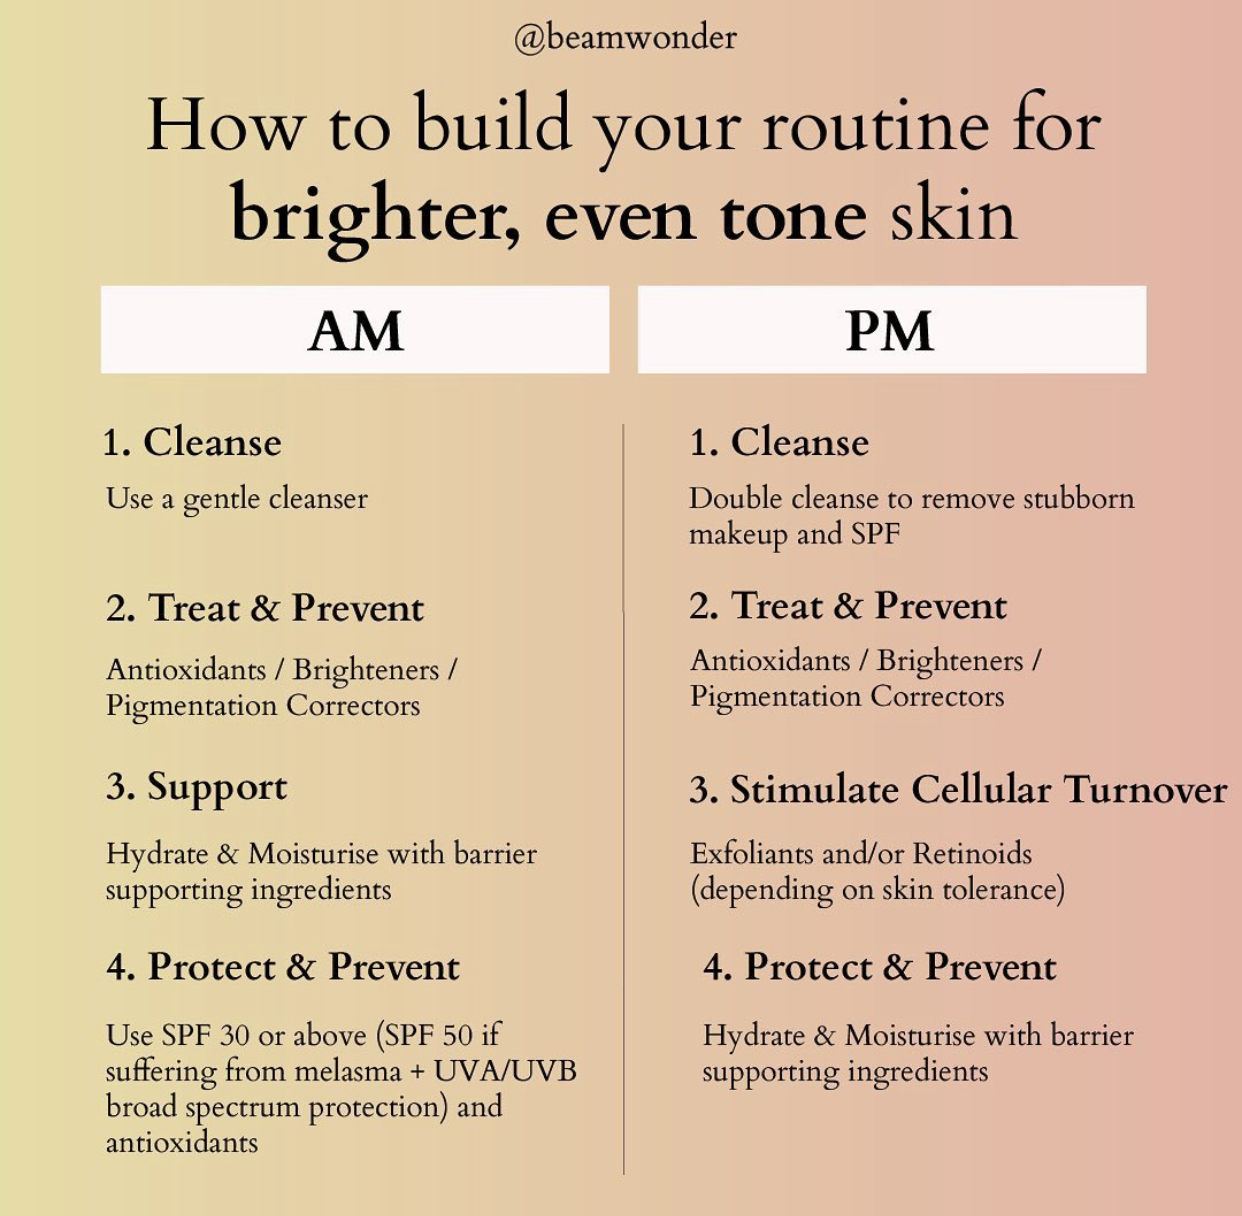 How to build your routine for brighter even tone skin